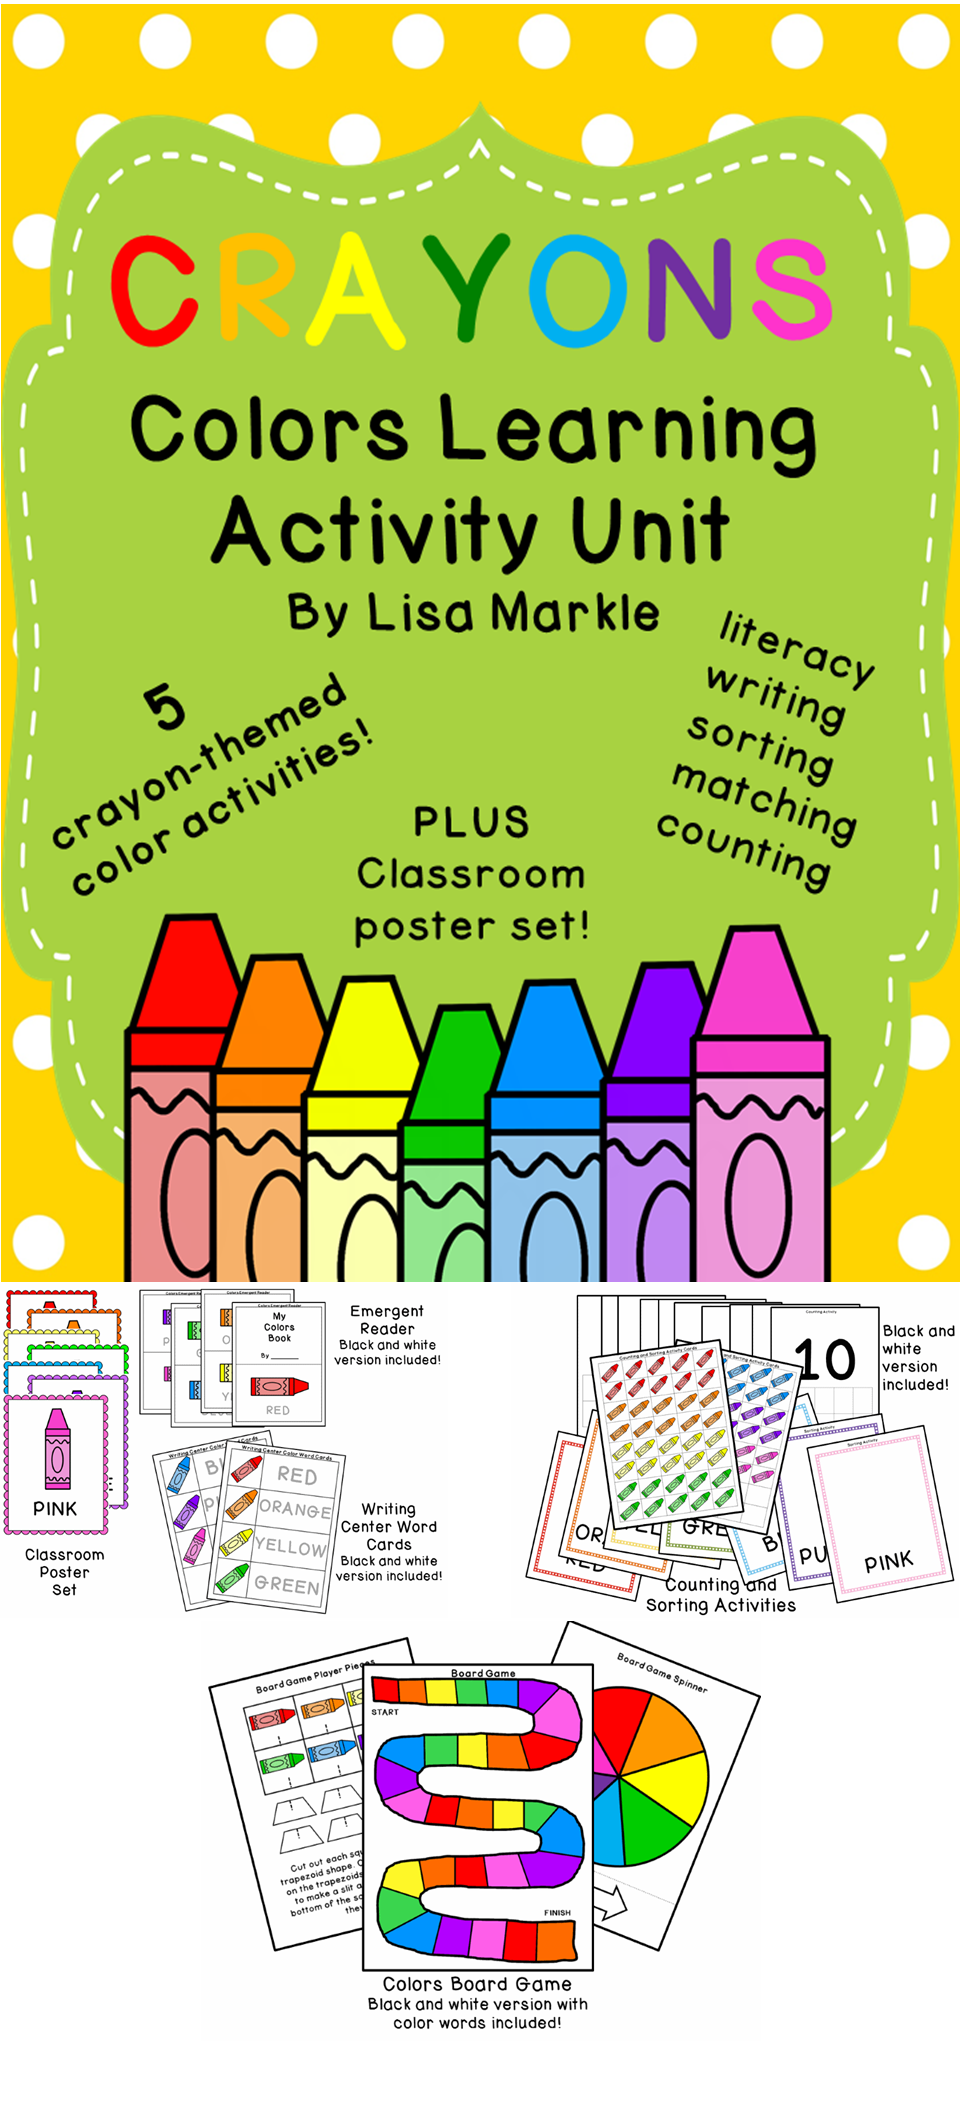 Crayons Theme Colors Learning Activity Unit for Preschool | Counting ...